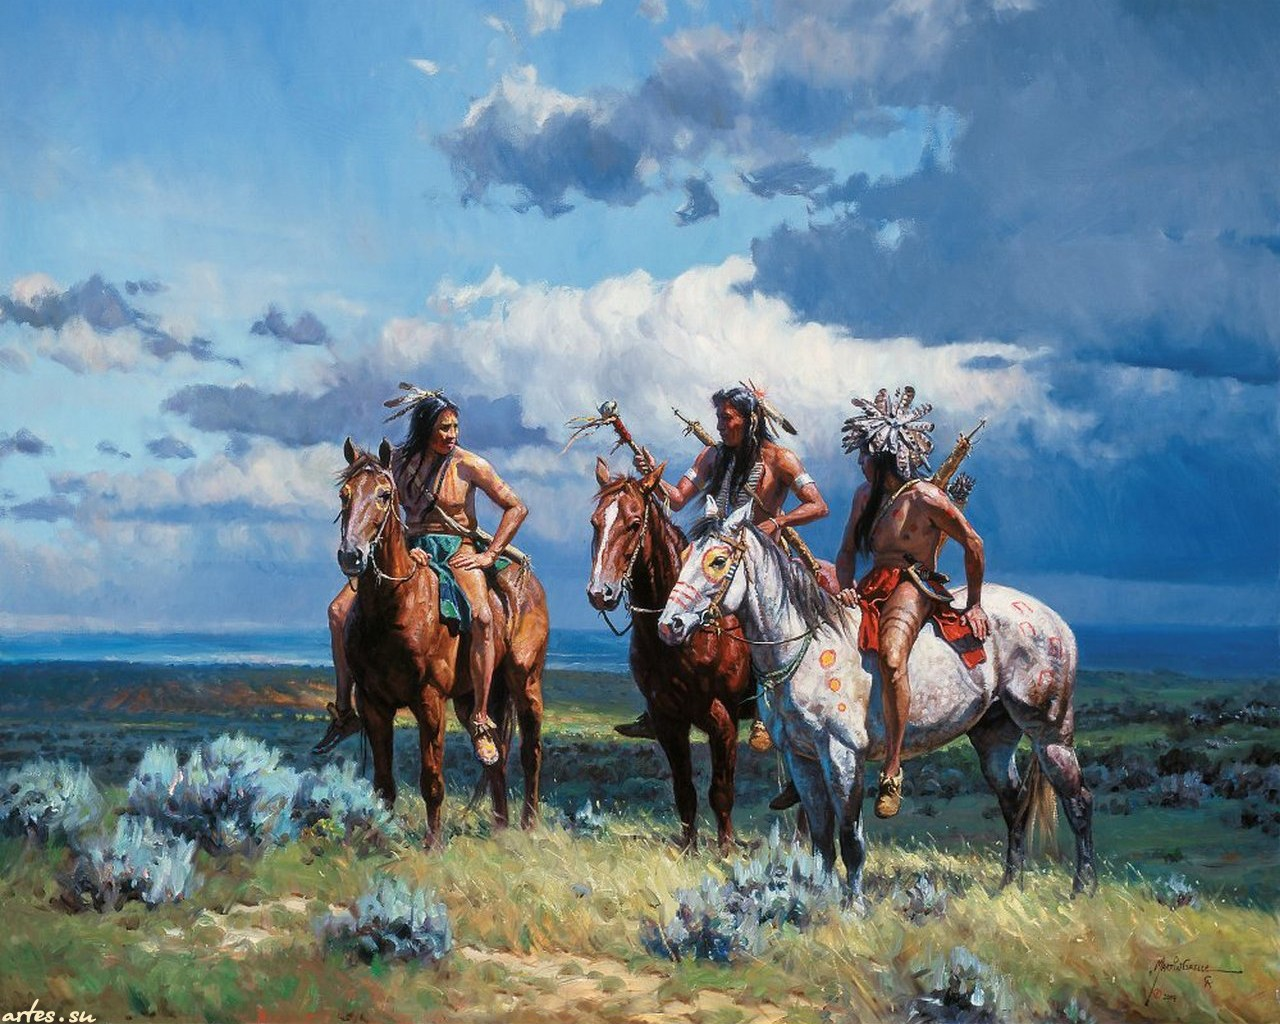 Native American Backgrounds for Facebook wallpaper Native American 1280x1024